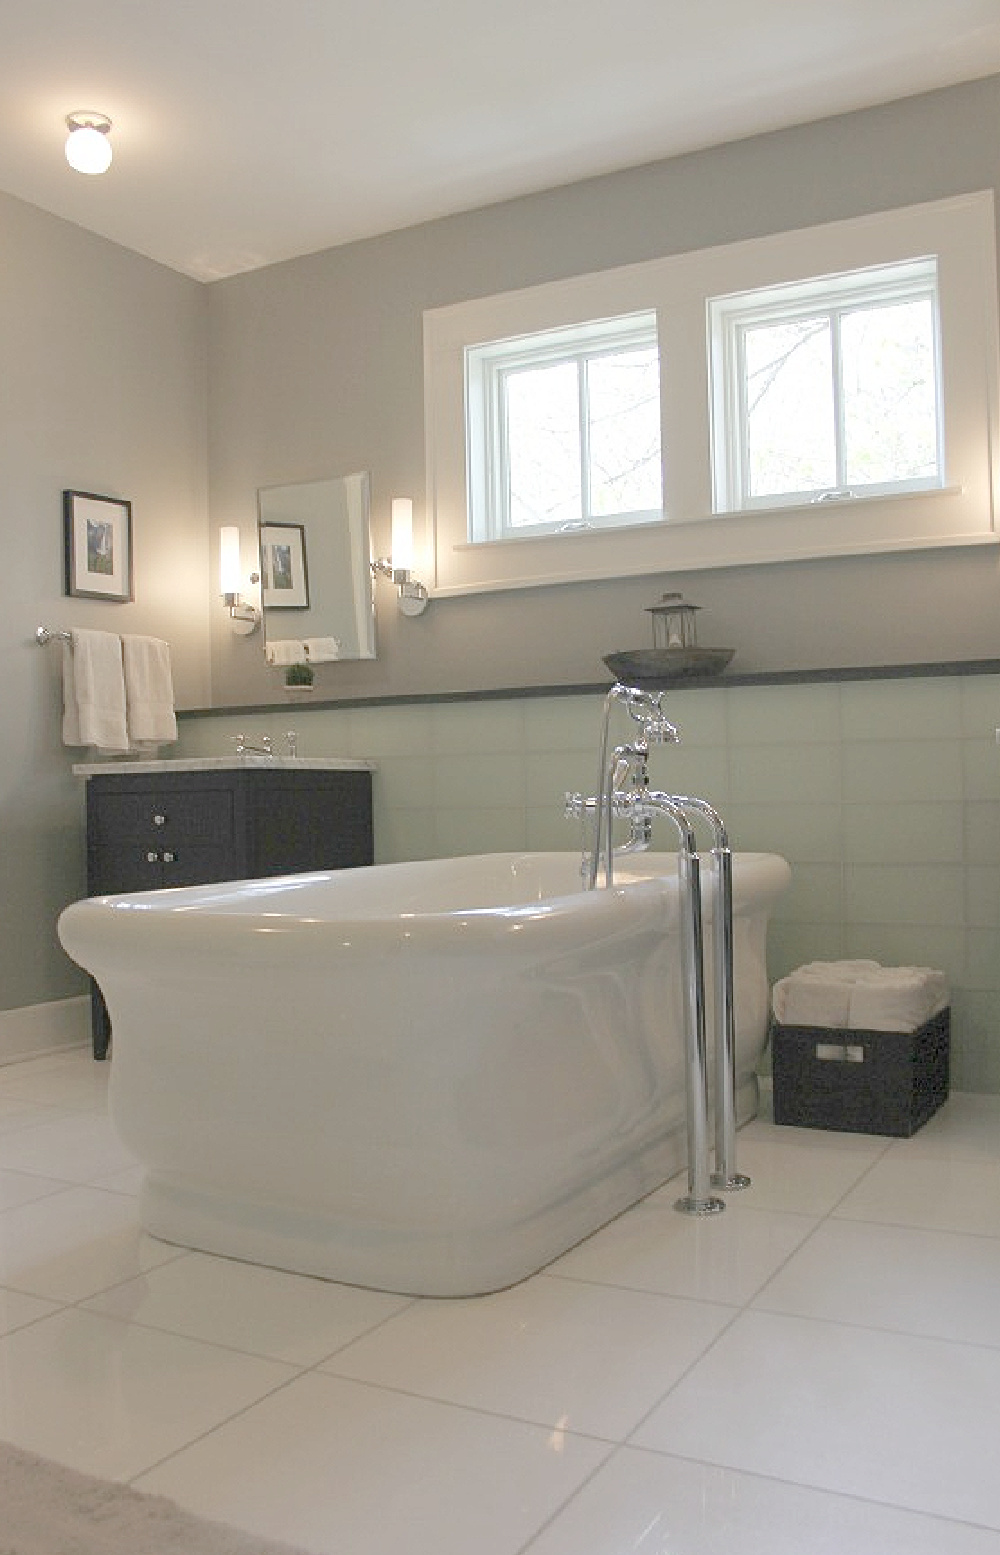 Benjamin Moore Platinum Gray wall color in bath with Waterworks tub, glass tile, and black vanities. #platinumgray #paintcolors